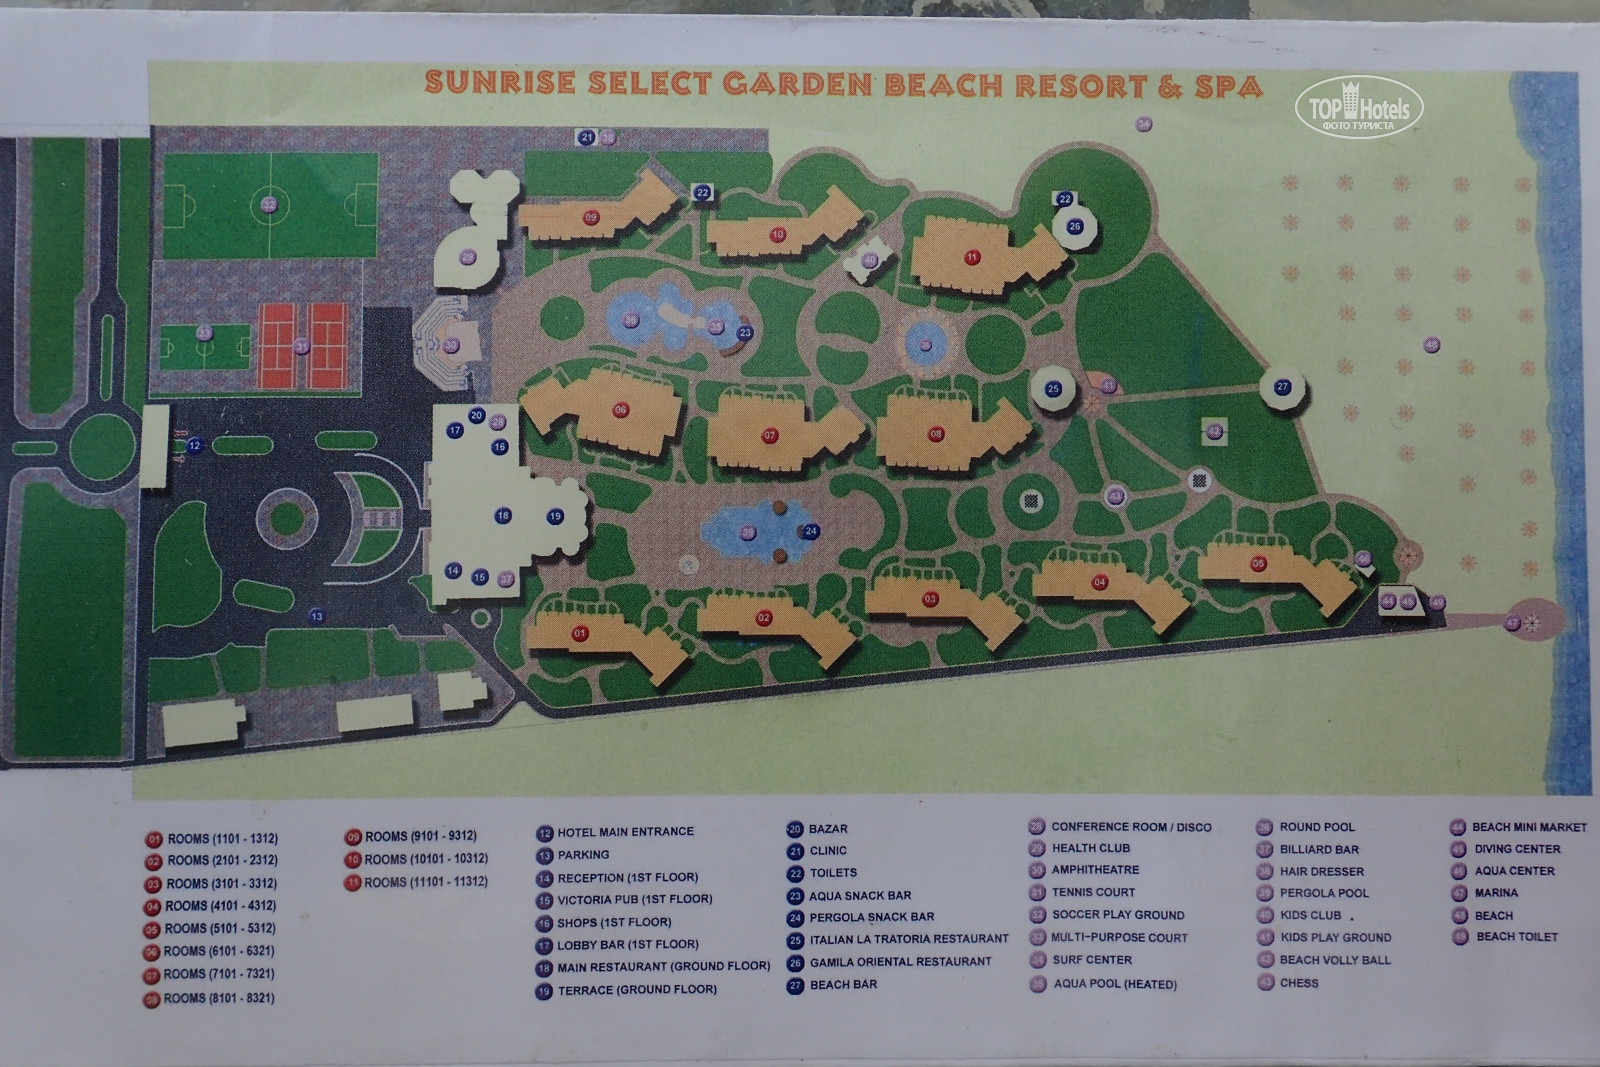 All photos: Hotel map отеля Sunrise Select Garden Beach Resort & Spa ...